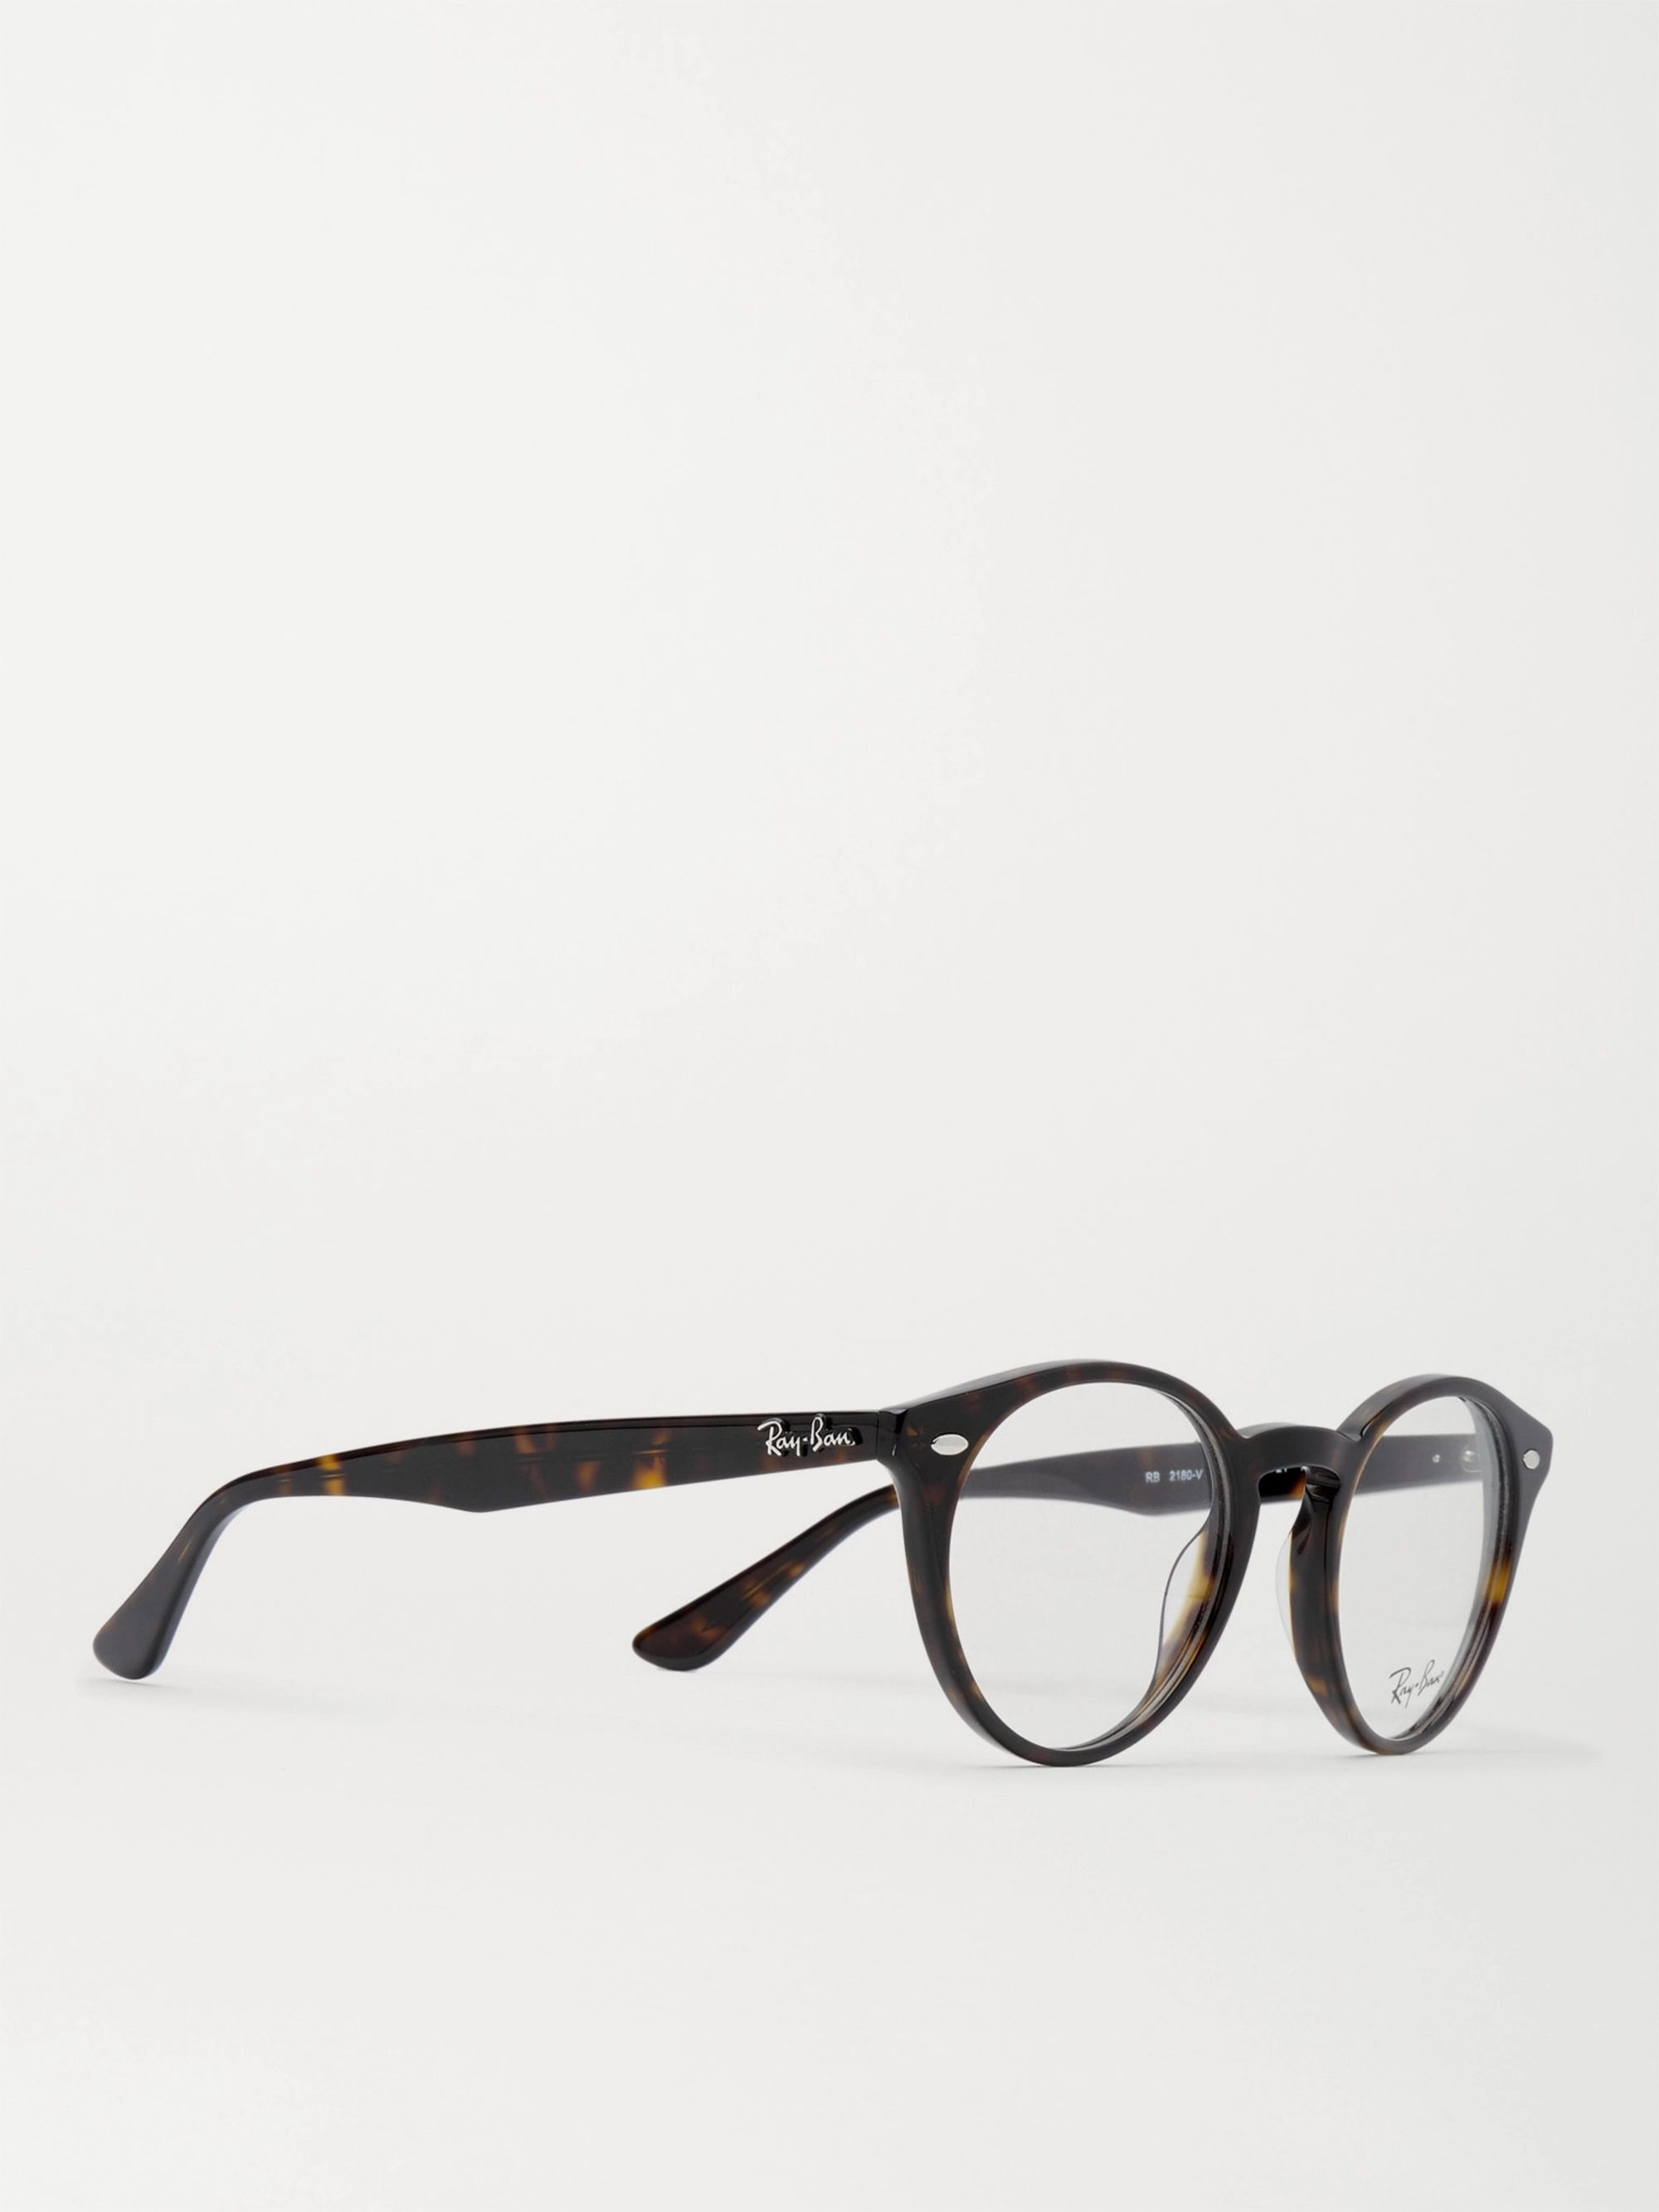 Ray-Ban Round-Frame Tortoiseshell Acetate Optical Glasses